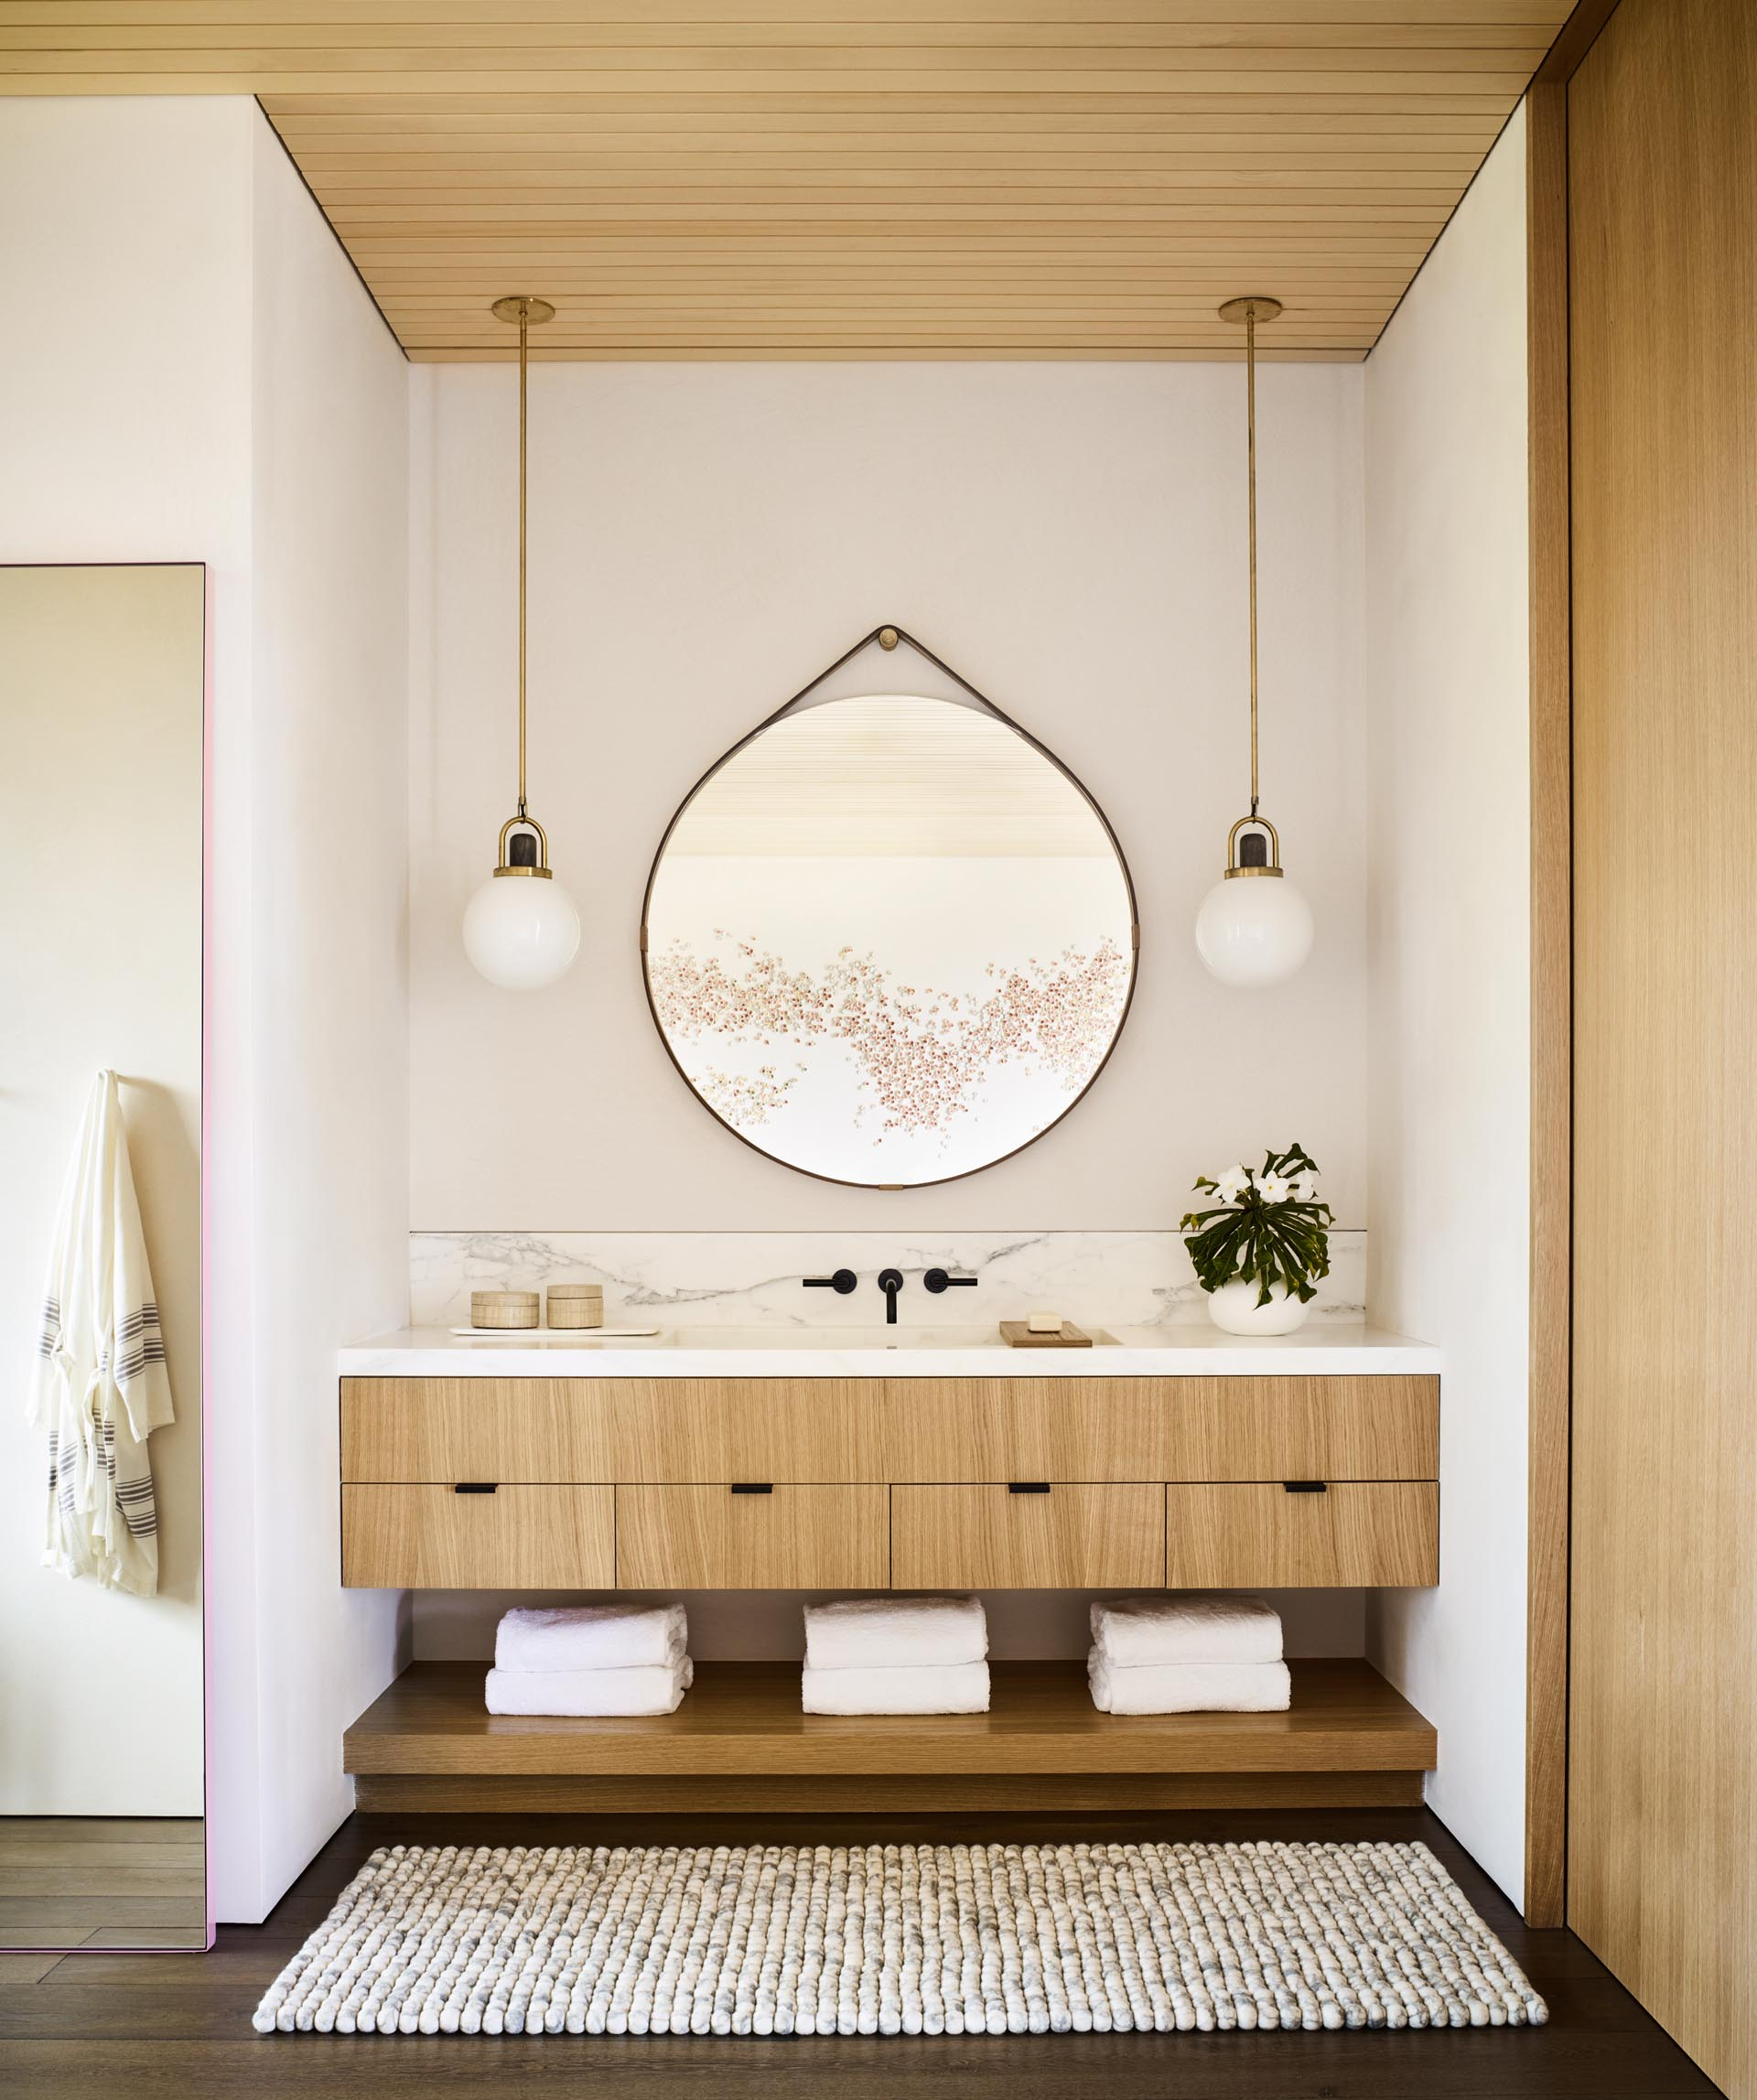 A modern bathroom with a natural color palette, a light wood vanity, and round hanging mirror.